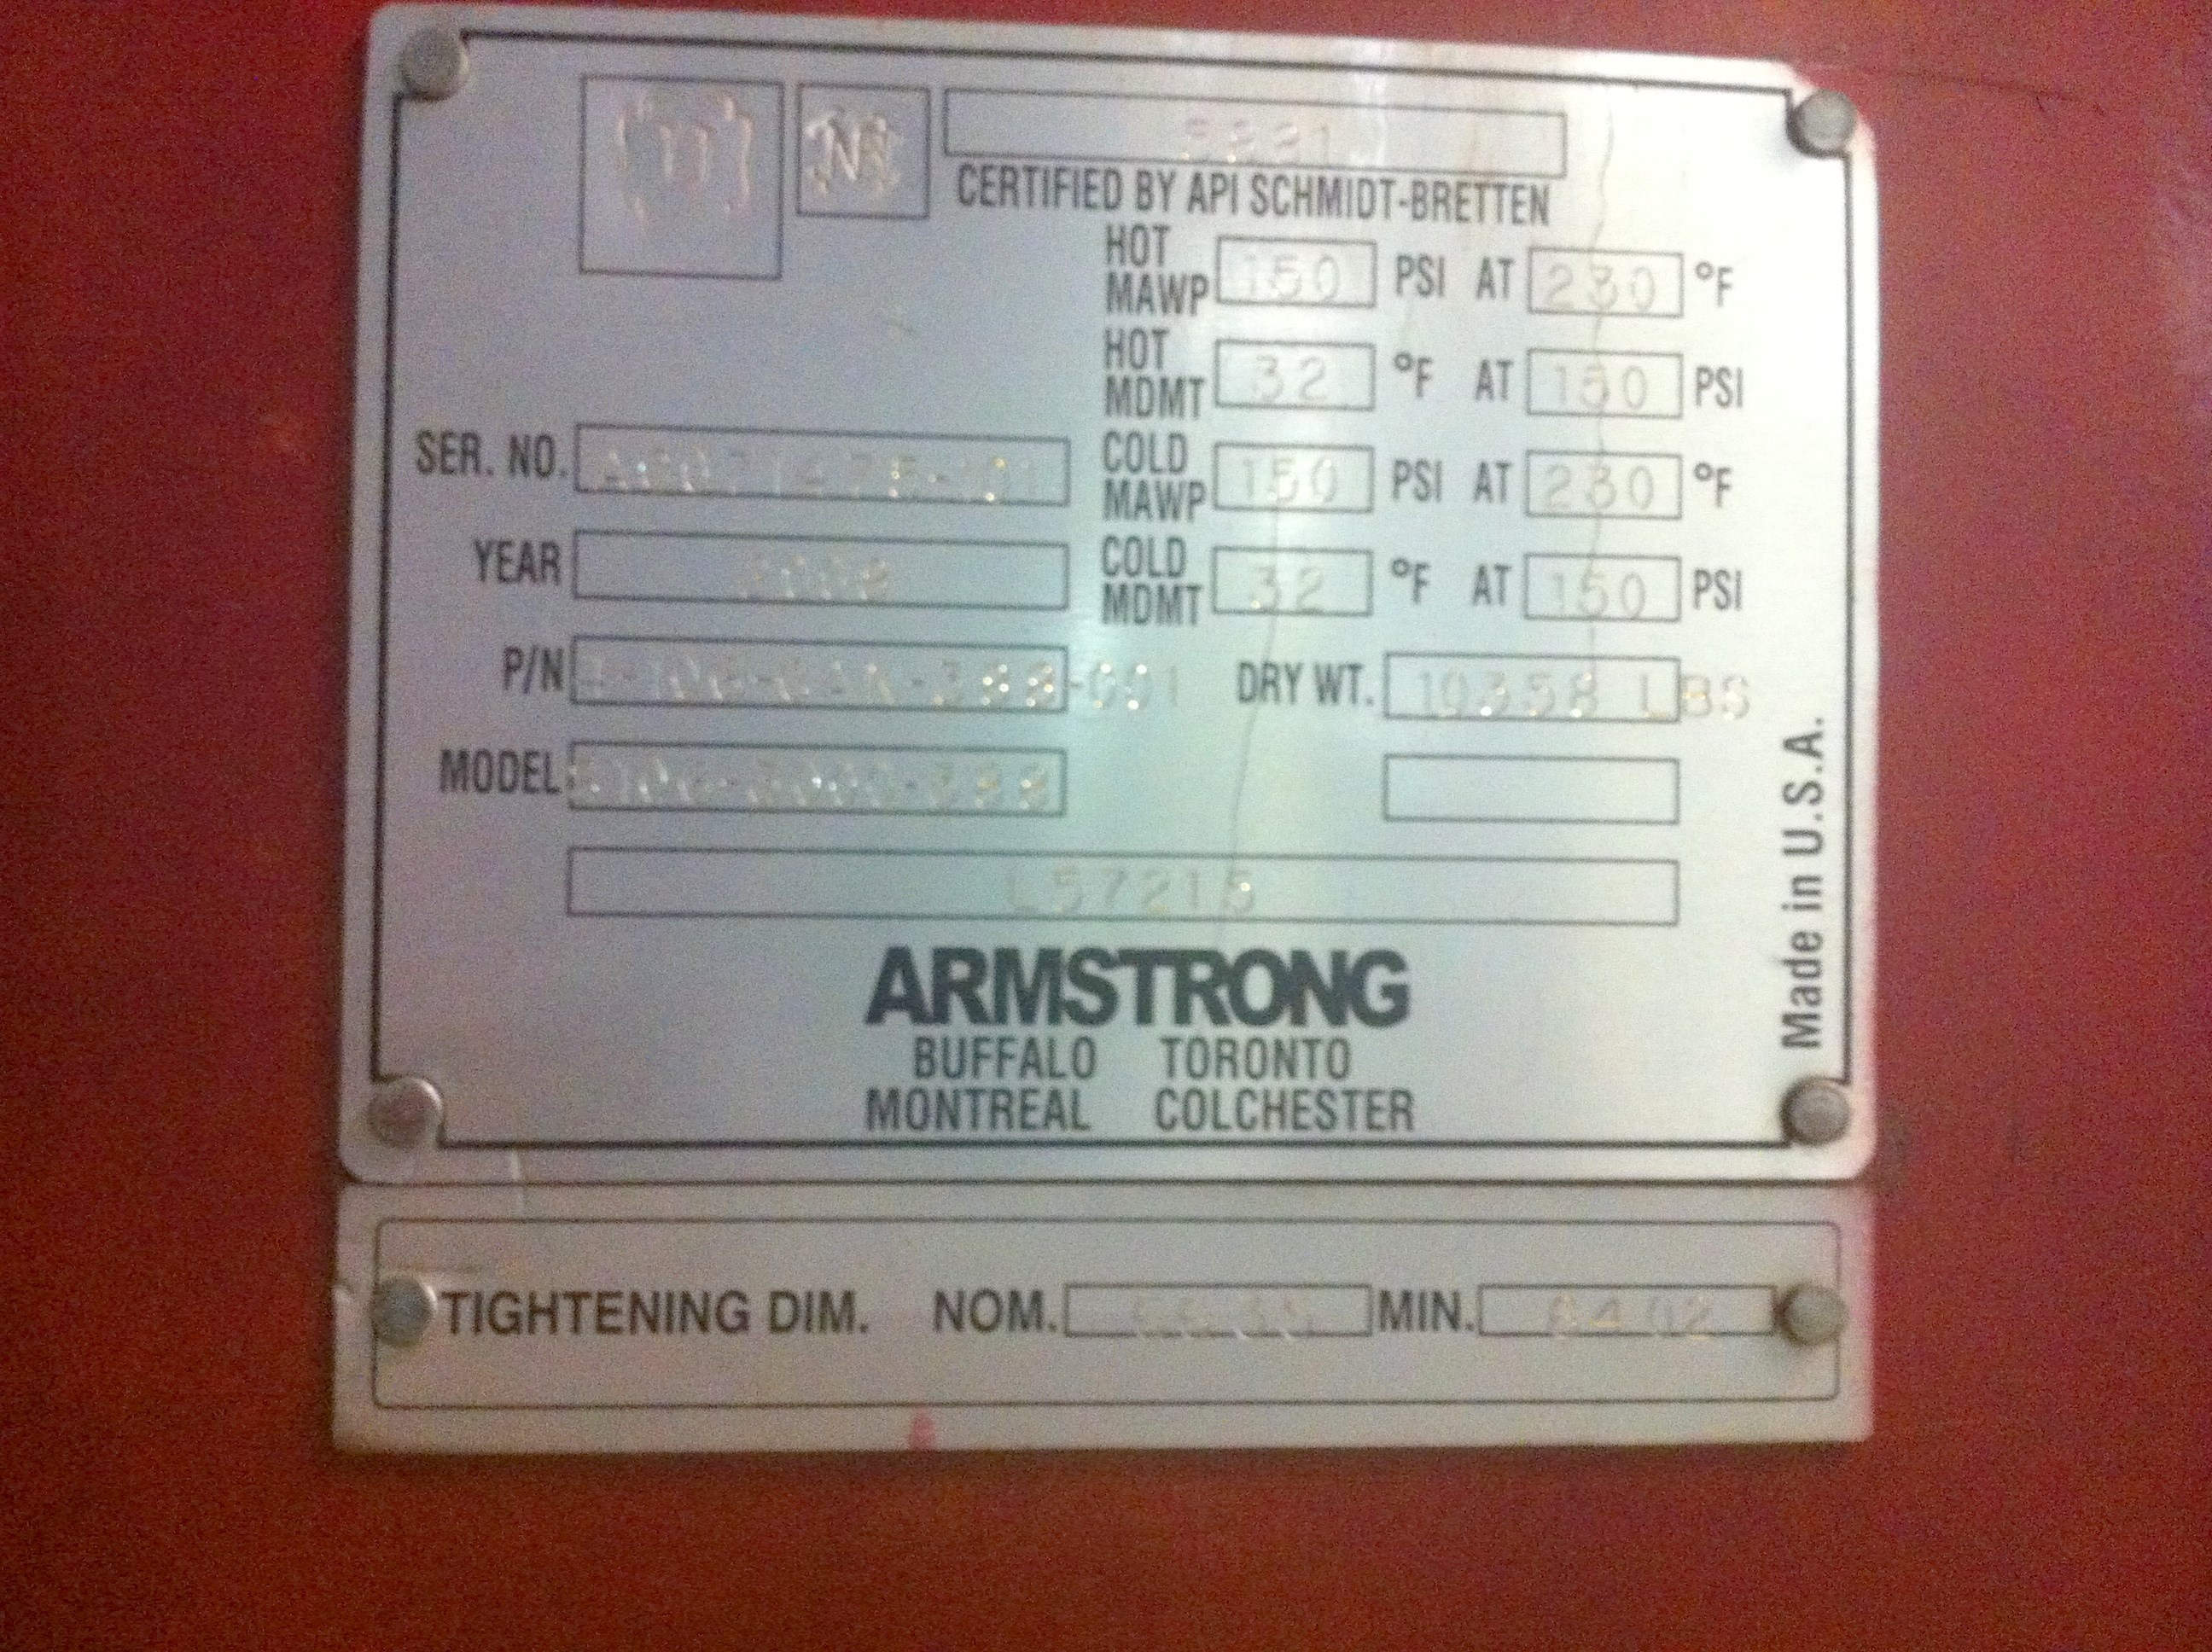 4611 Sq Ft Armstrong Stainless Steel Plate Heat Exchanger